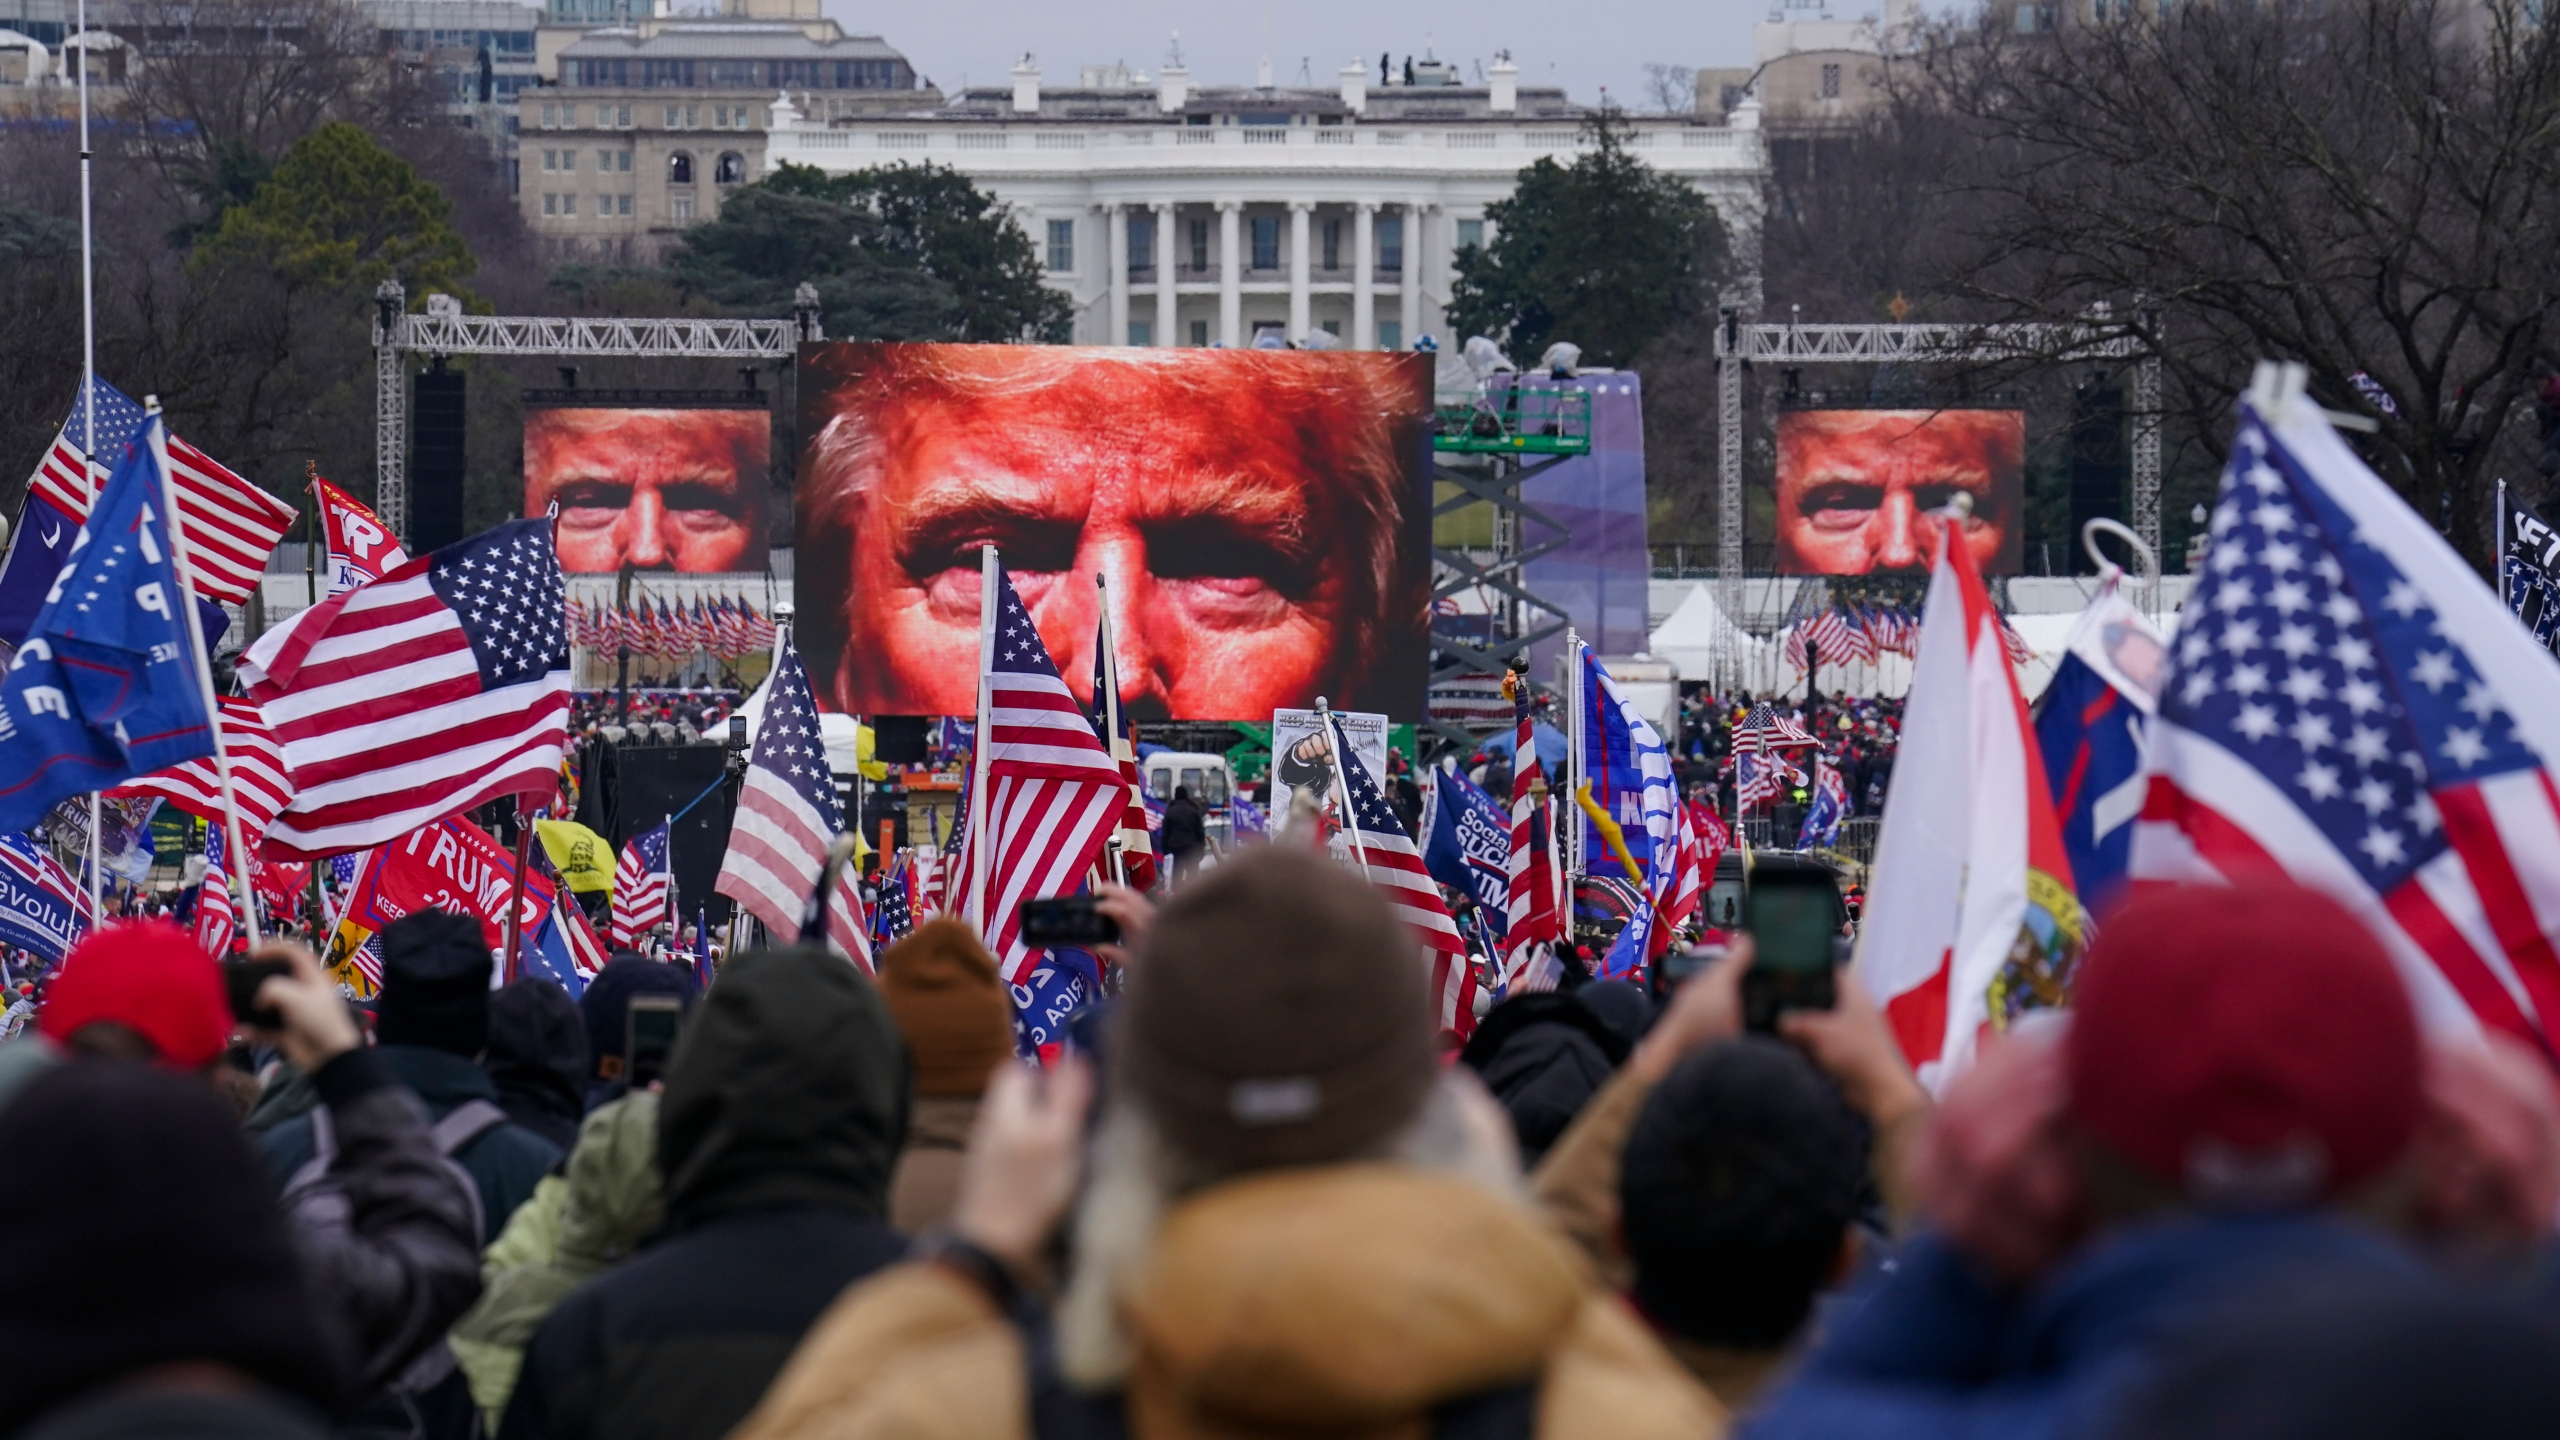 In this Jan. 6, 2021 file photo, Trump supporters participate in a rally in Washington. (AP Photo/John Minchillo)